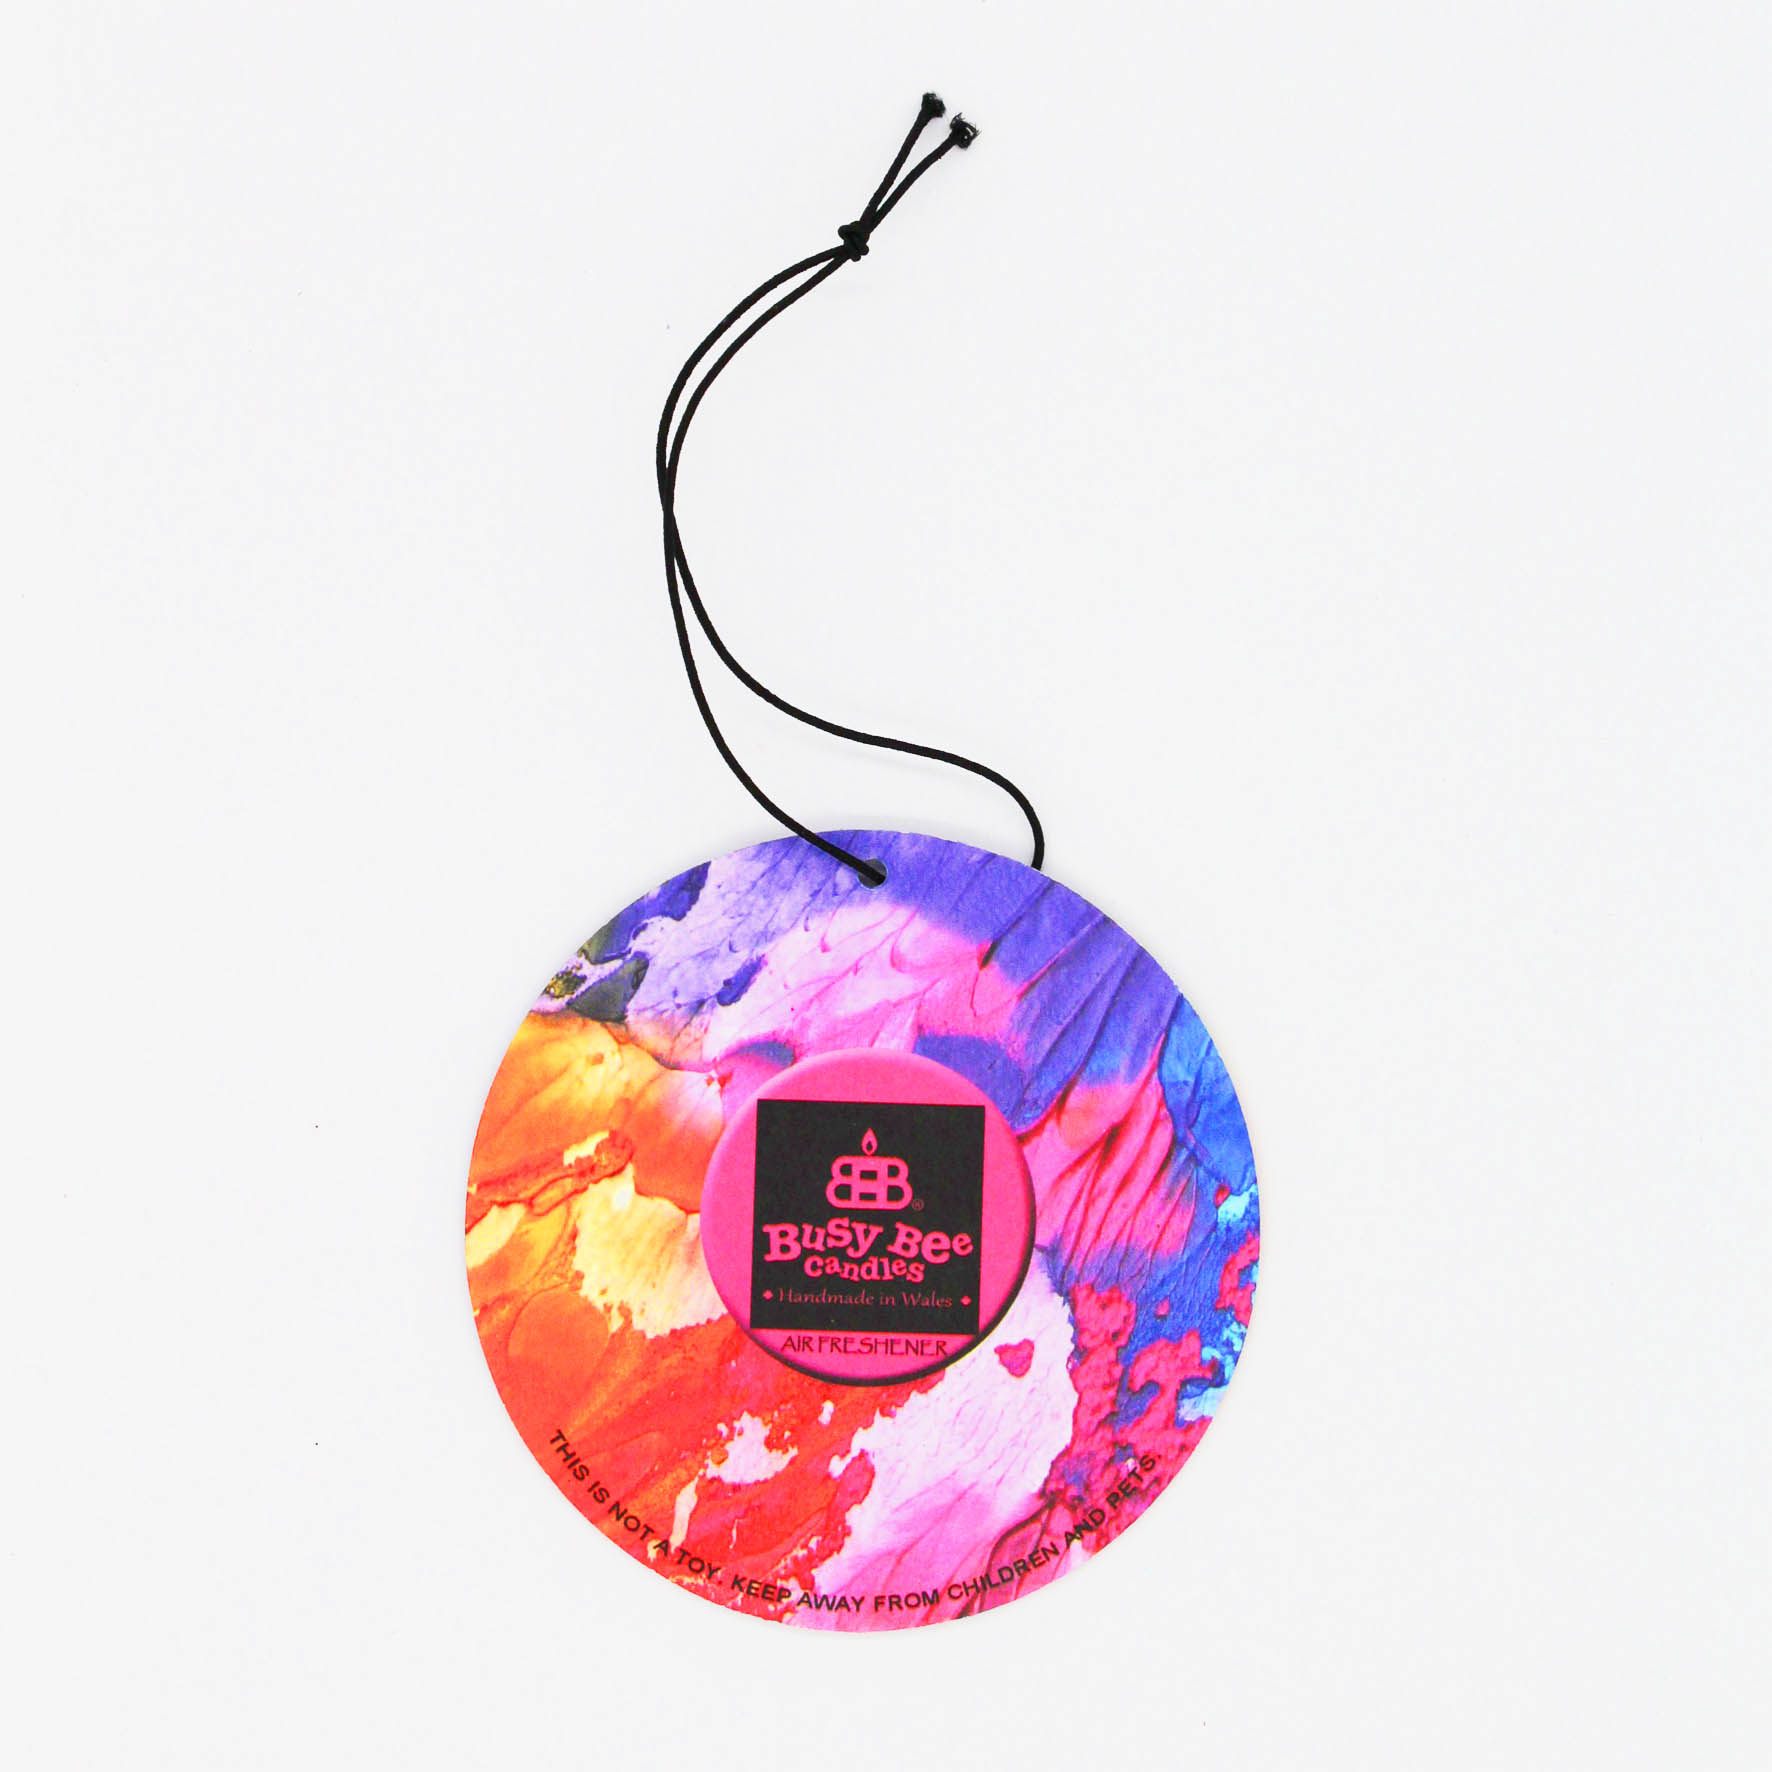 Lilac Mist Hanging Air Freshener